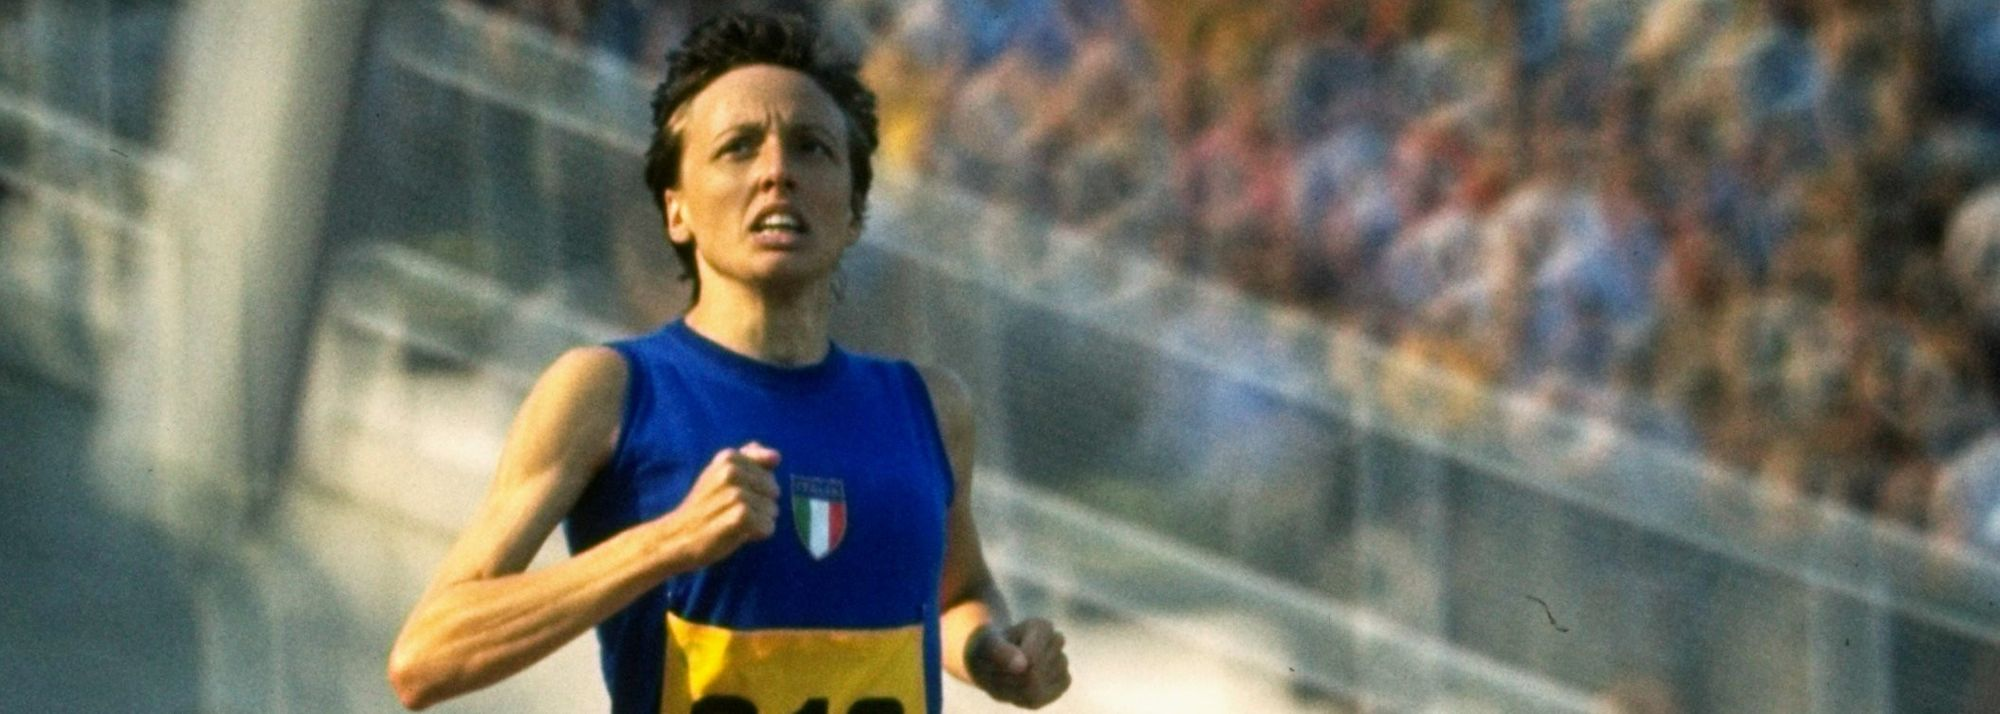 World Athletics is deeply saddened to hear that Italian middle distance star Paola Pigni – who won an Olympic bronze and two world cross country titles during her highly successful athletics career – died on Friday (11) at the age of 75.